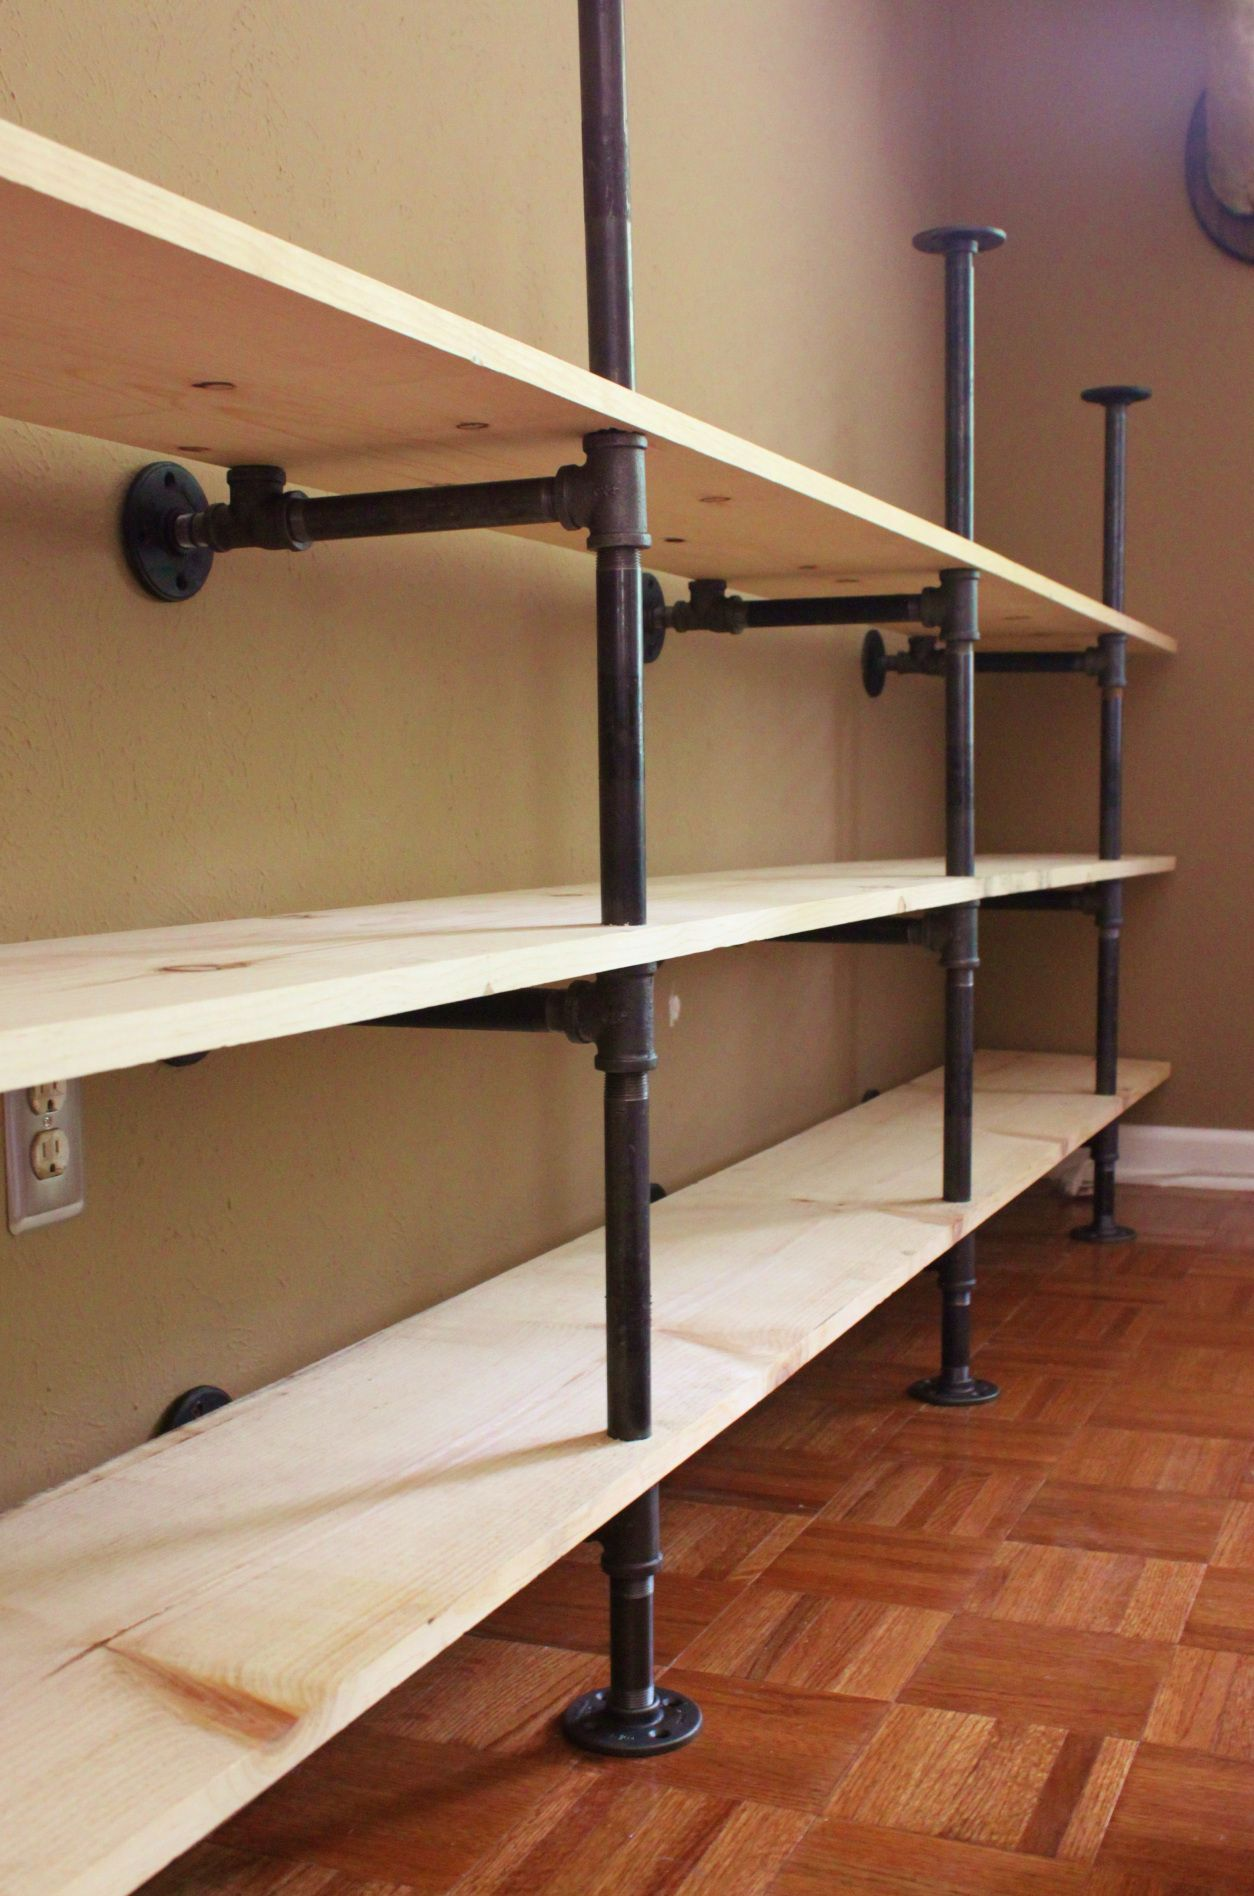 to build create anywhere building best a decor of organizer with shelvesy closet shelves in how storage